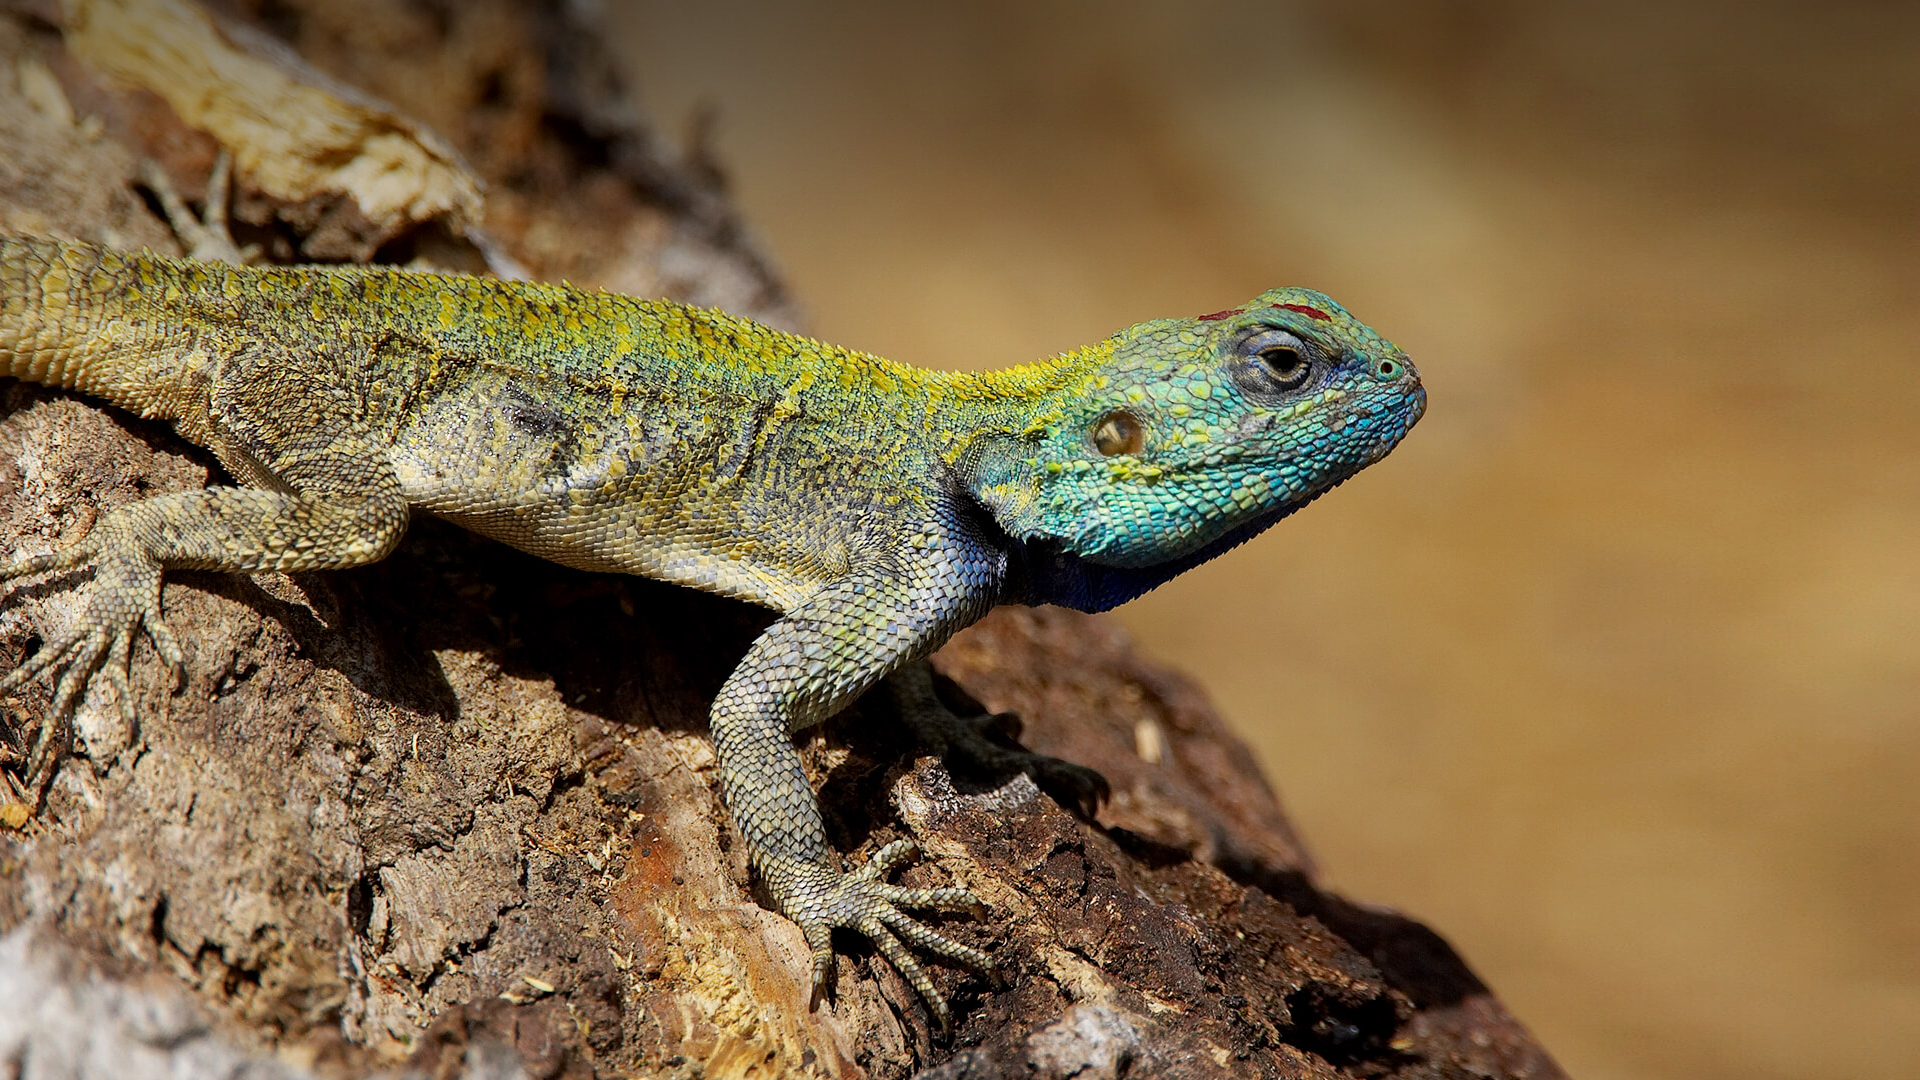 How to get lizard away from home? Home remedies for lizard escape.